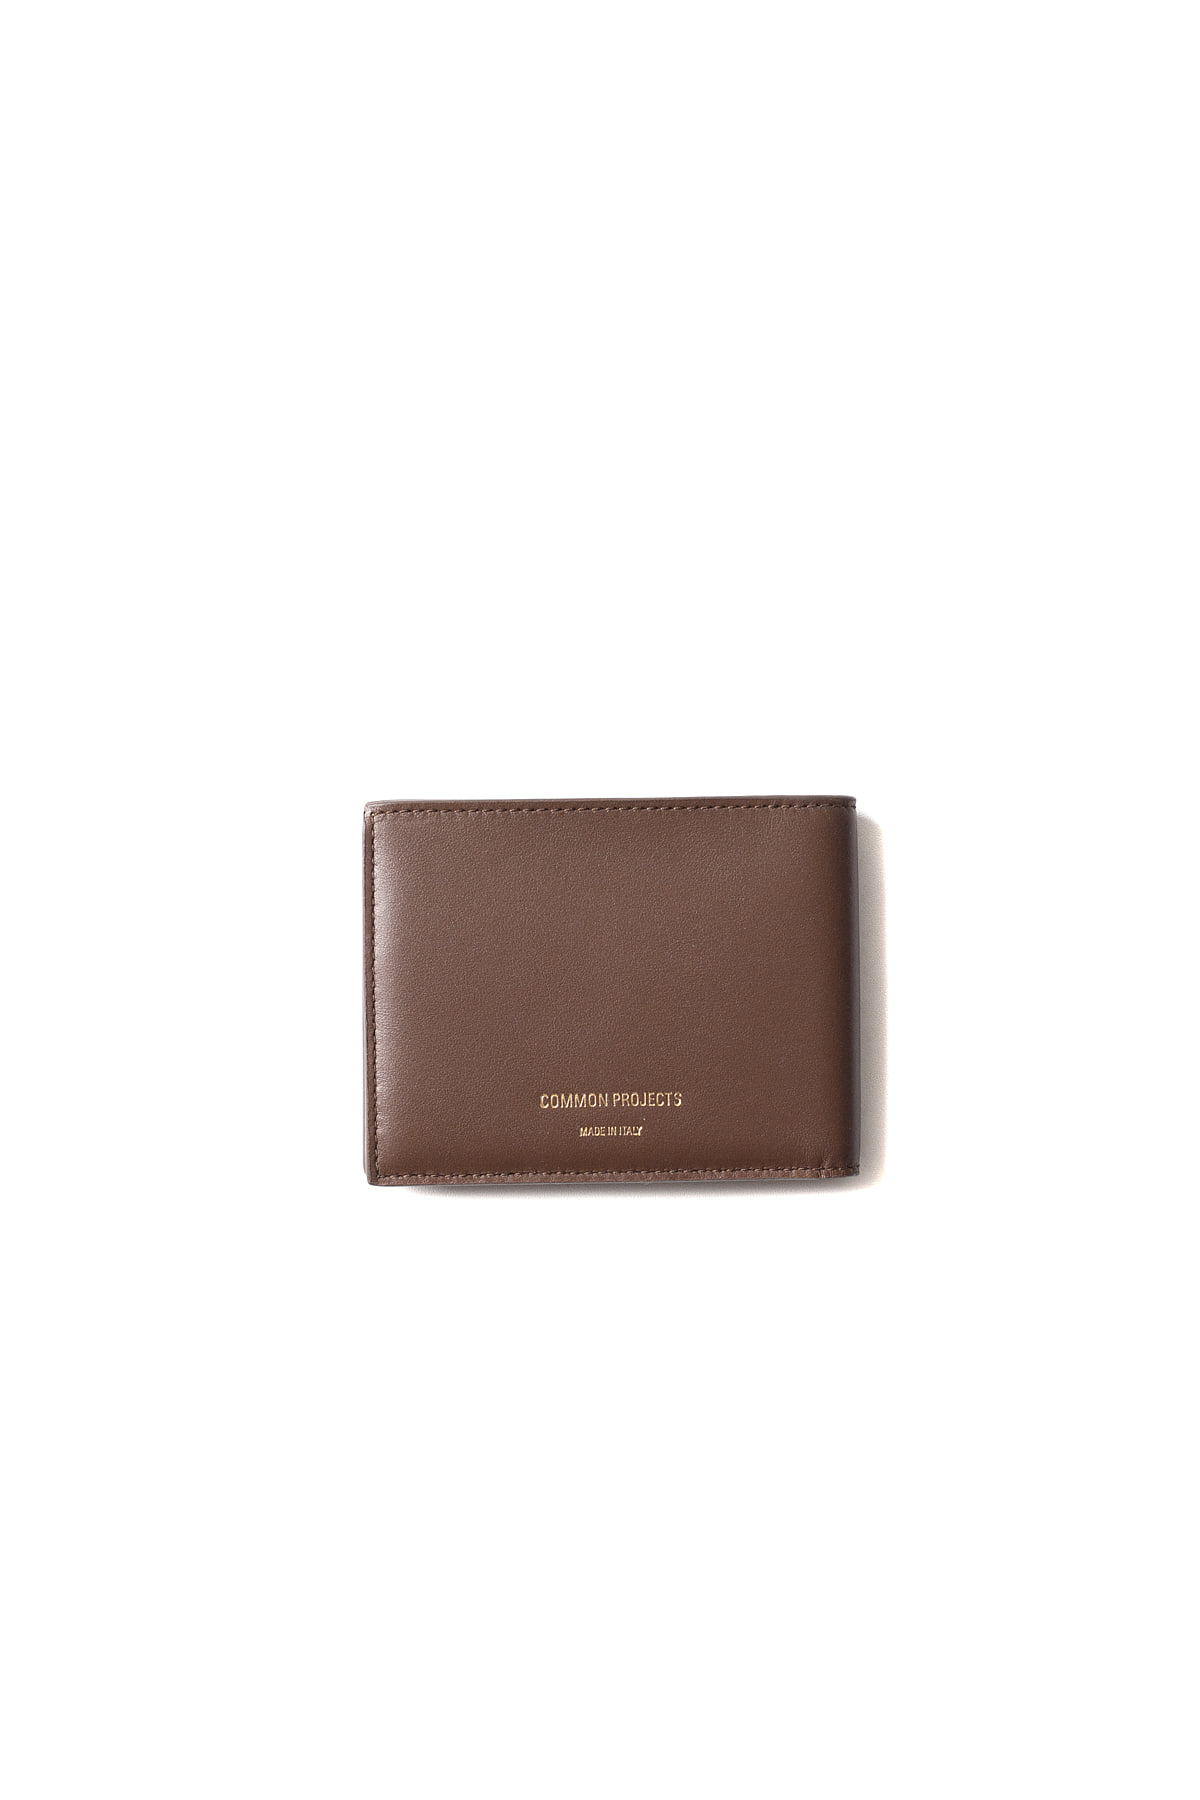 Common Projects : Standard Wallet 6CC (Brown)